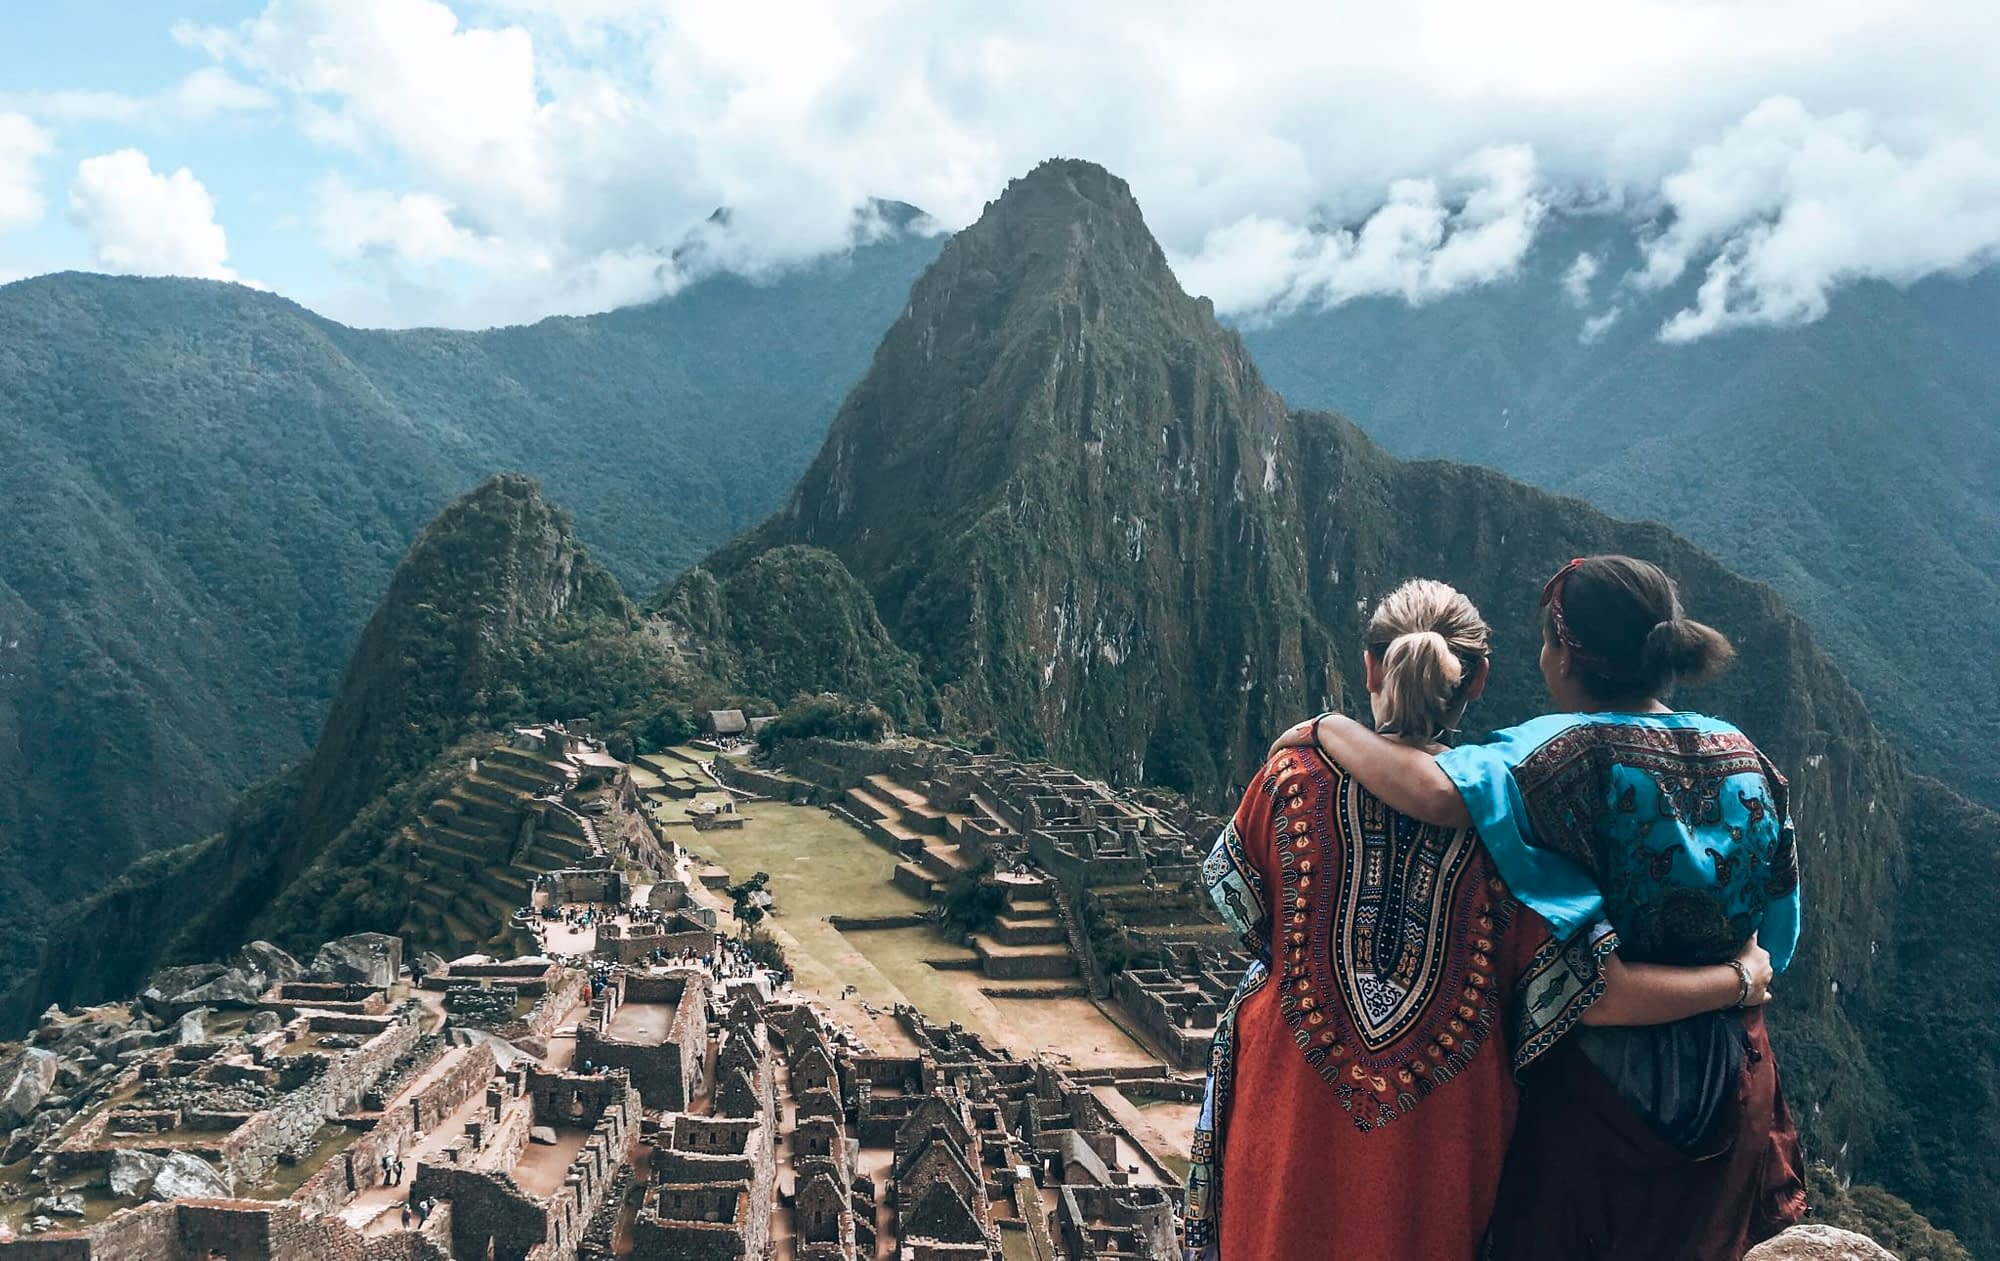 Two girls looking out over Machu Picchu